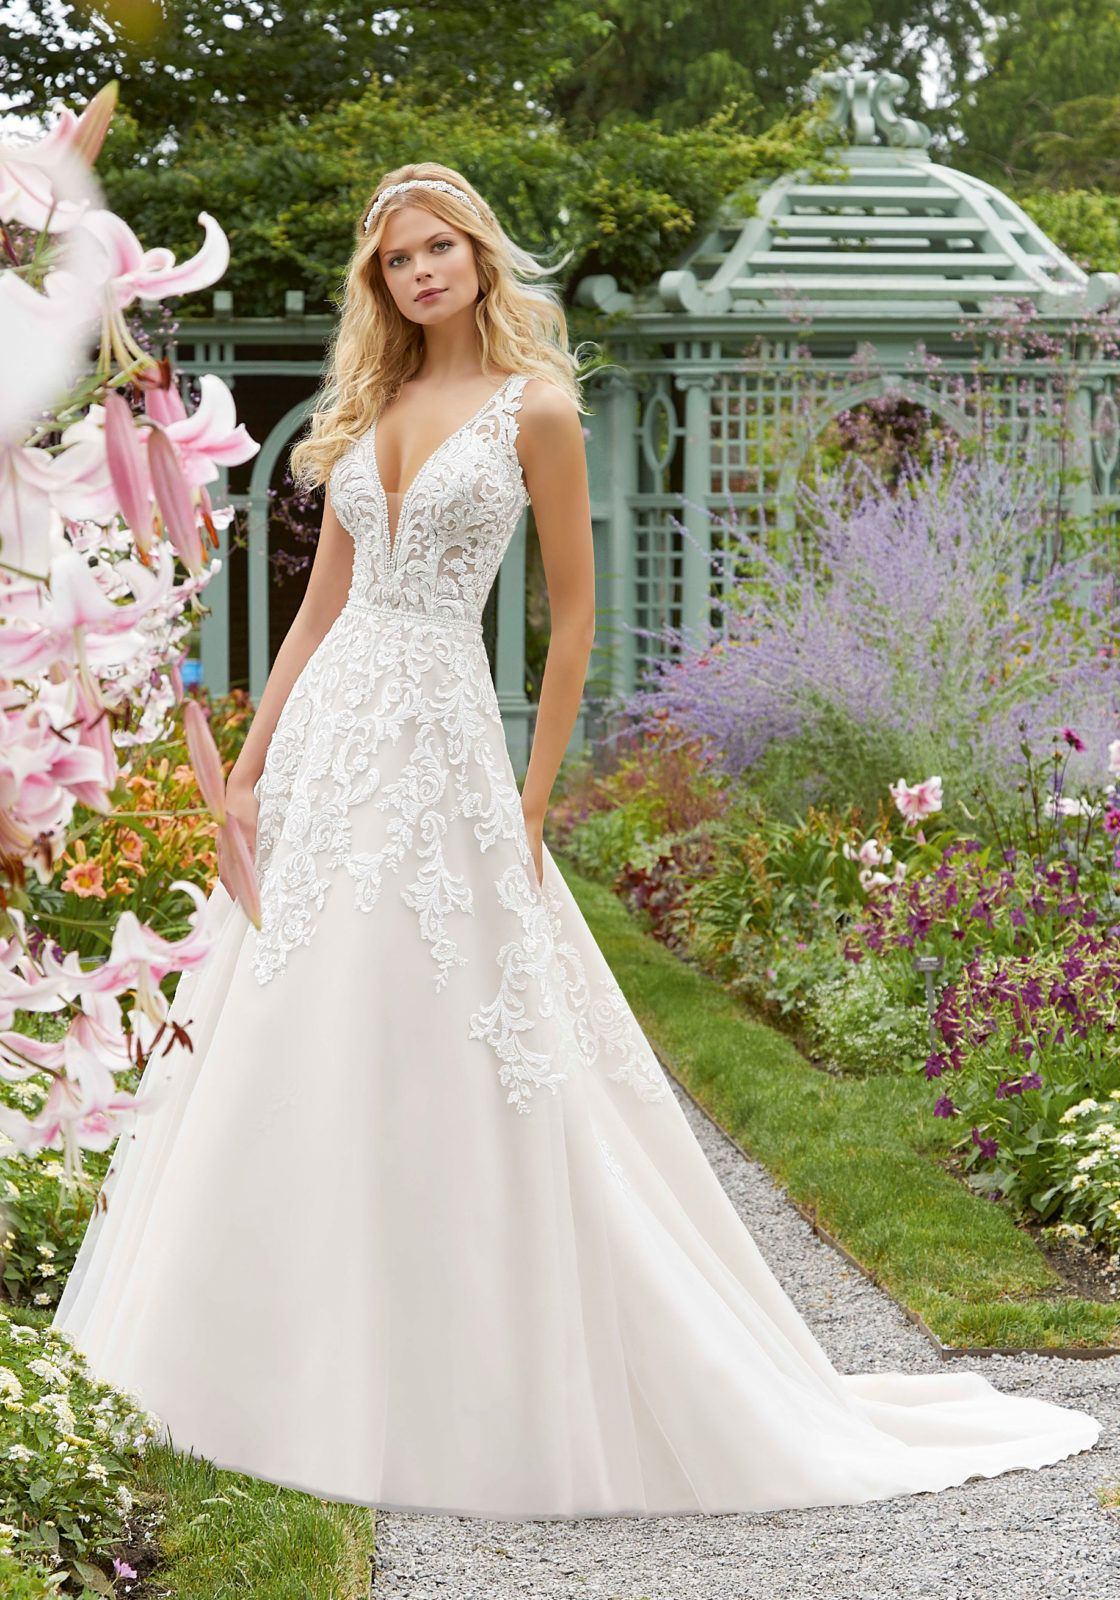 Parthenia Wedding Dress Morilee Wedding Dress Styles Bridal Wedding Dresses Bridal Dresses